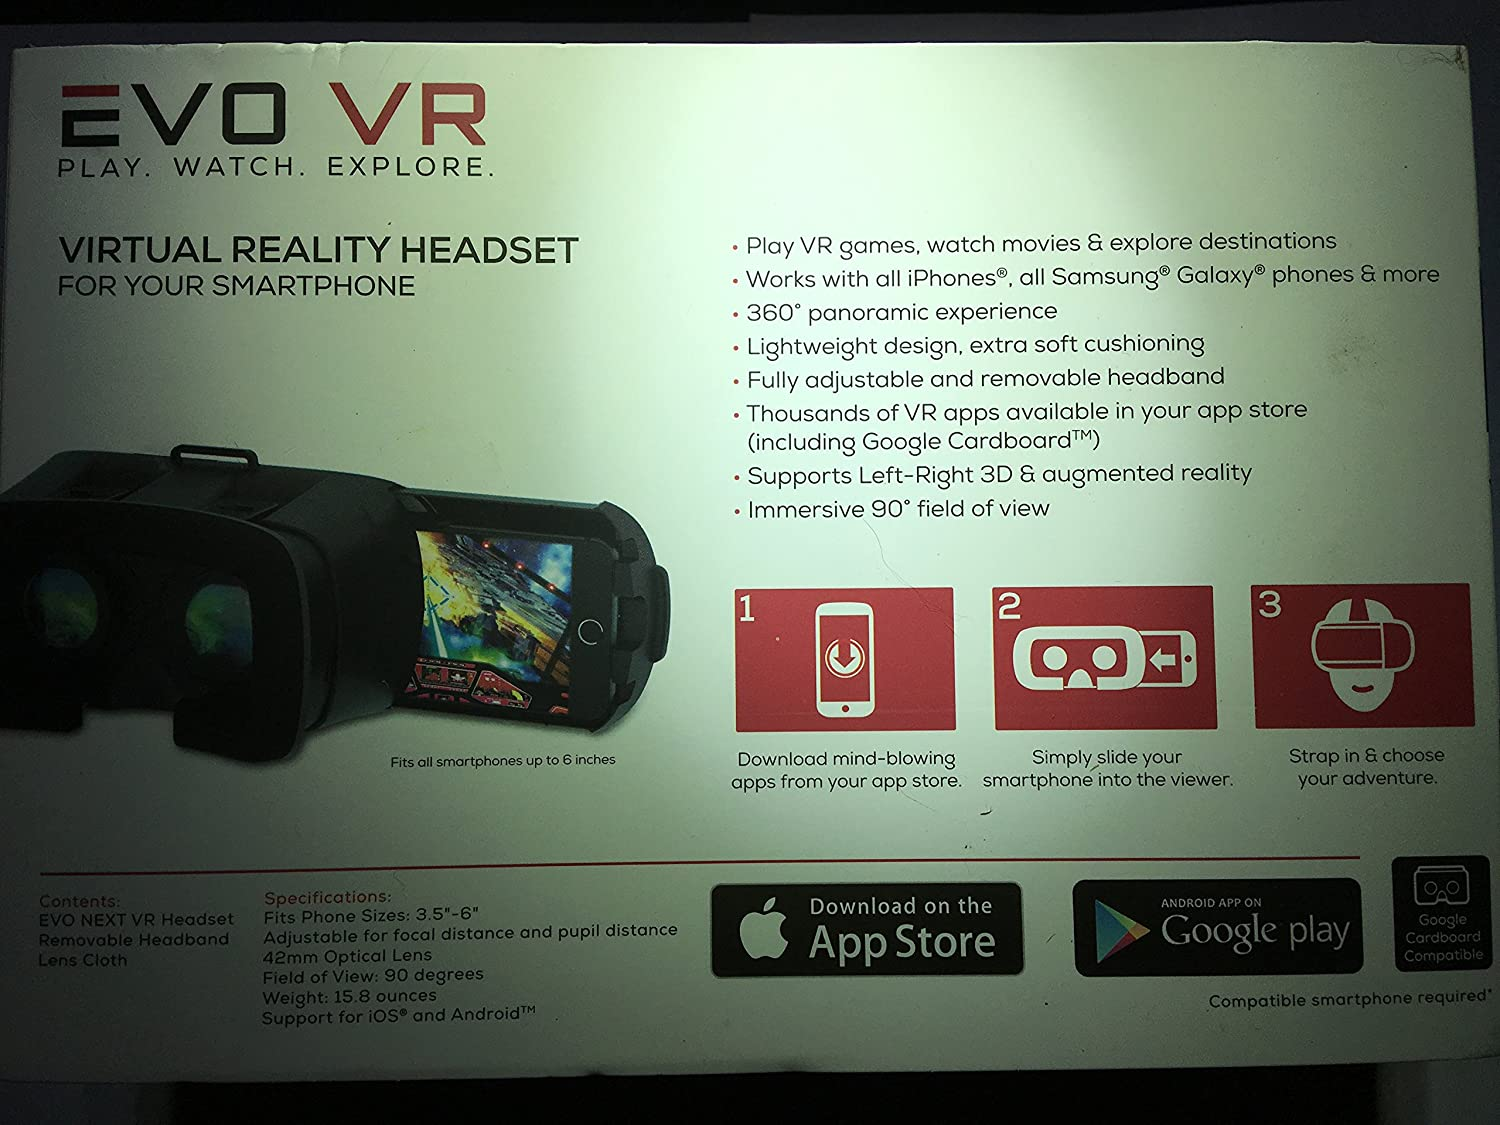 82886b836915 Amazon.com  EVO VR - Virtual Reality Headset for All Smartphones - IOS    Android - Black color  Cell Phones   Accessories